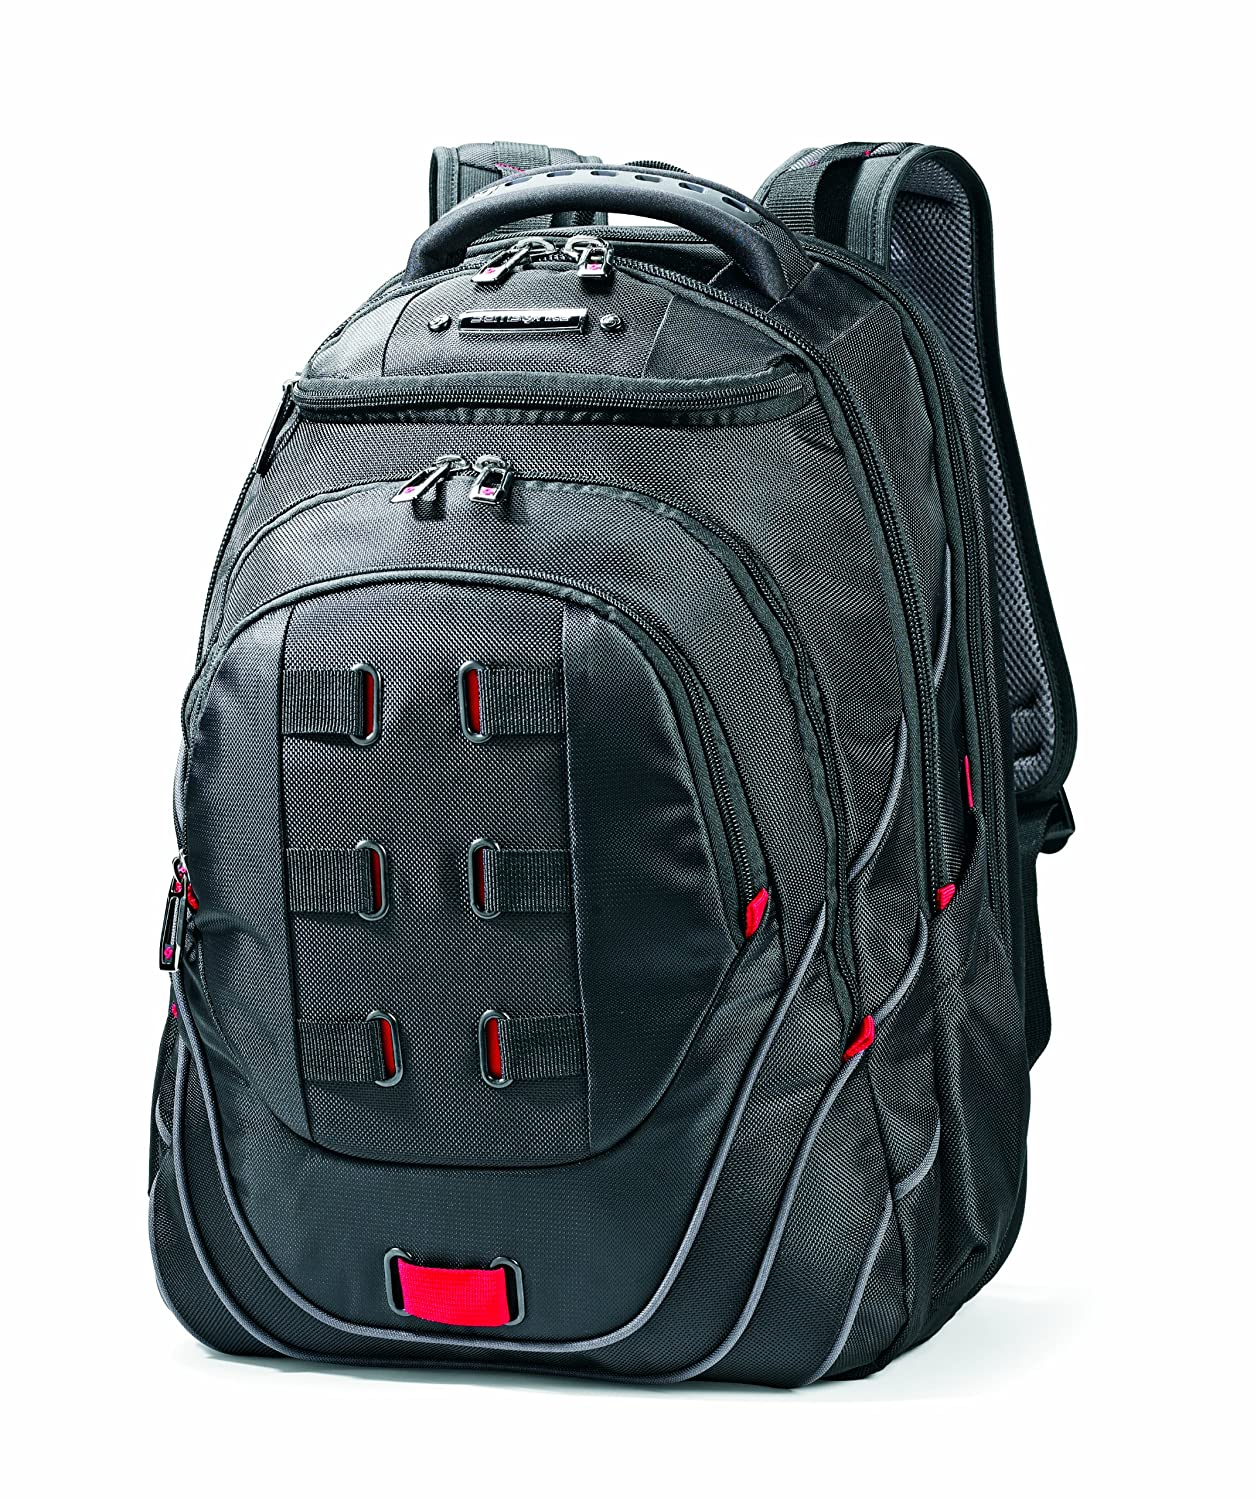 amazon com samsonite luggage tectonic backpack black red